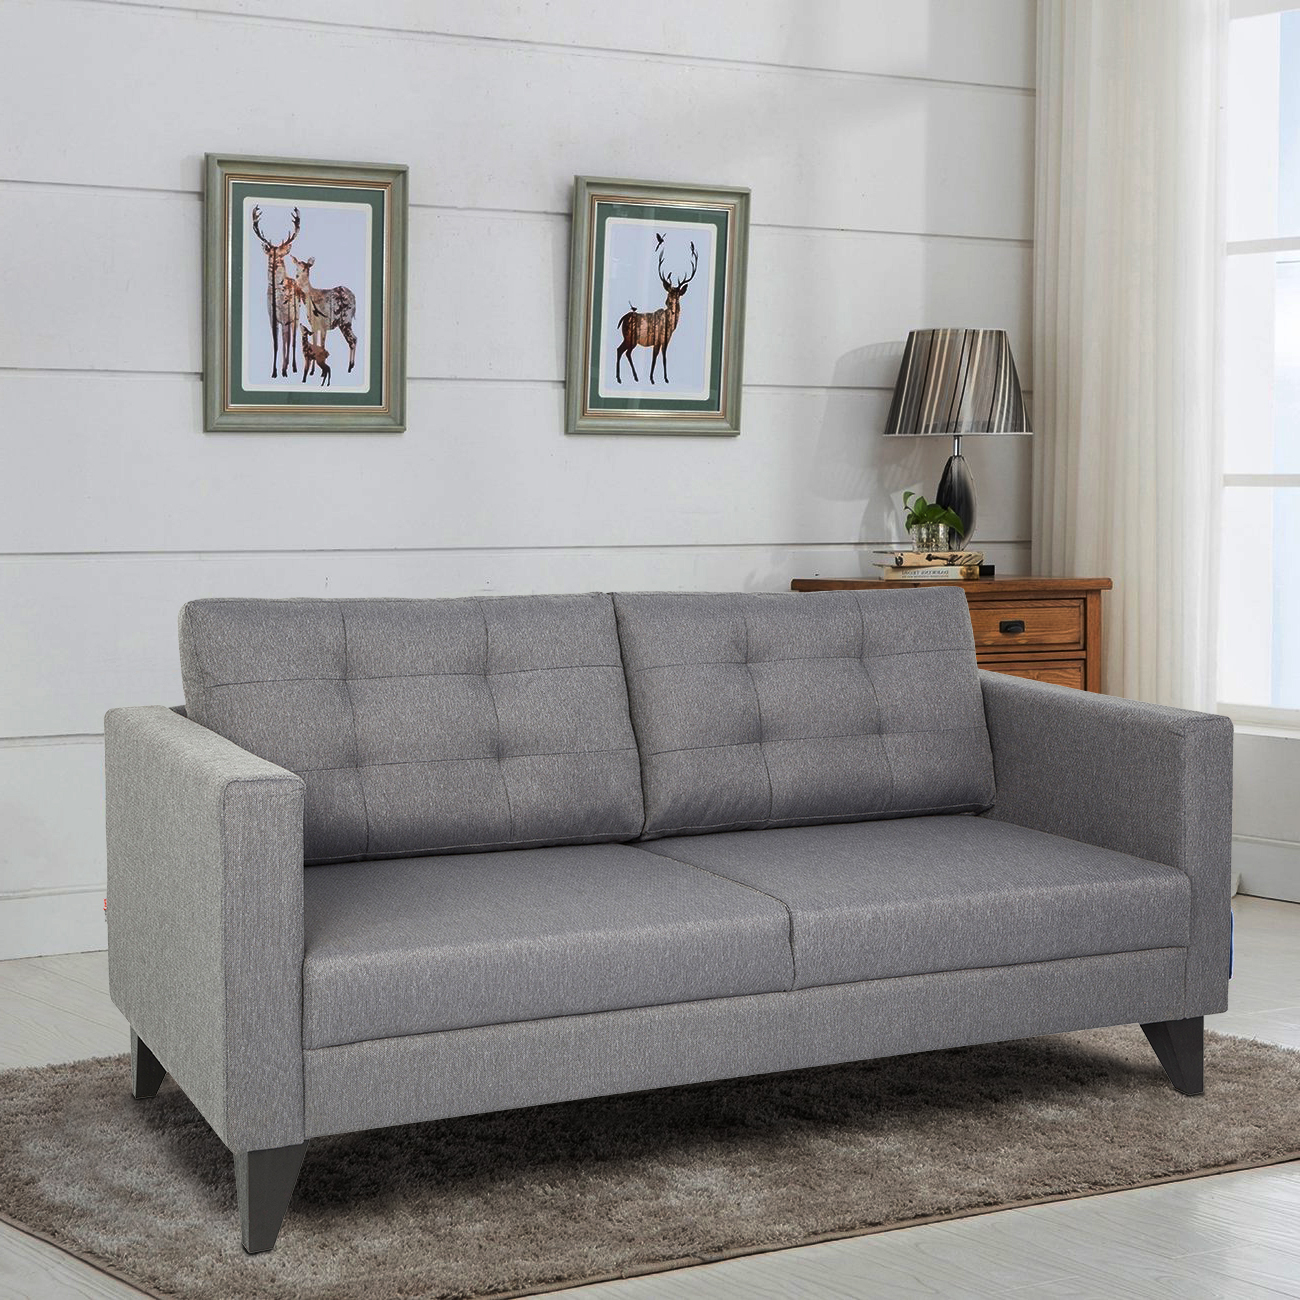 Castellar Fabric Three Seater sofa in Grey Colour by HomeTown